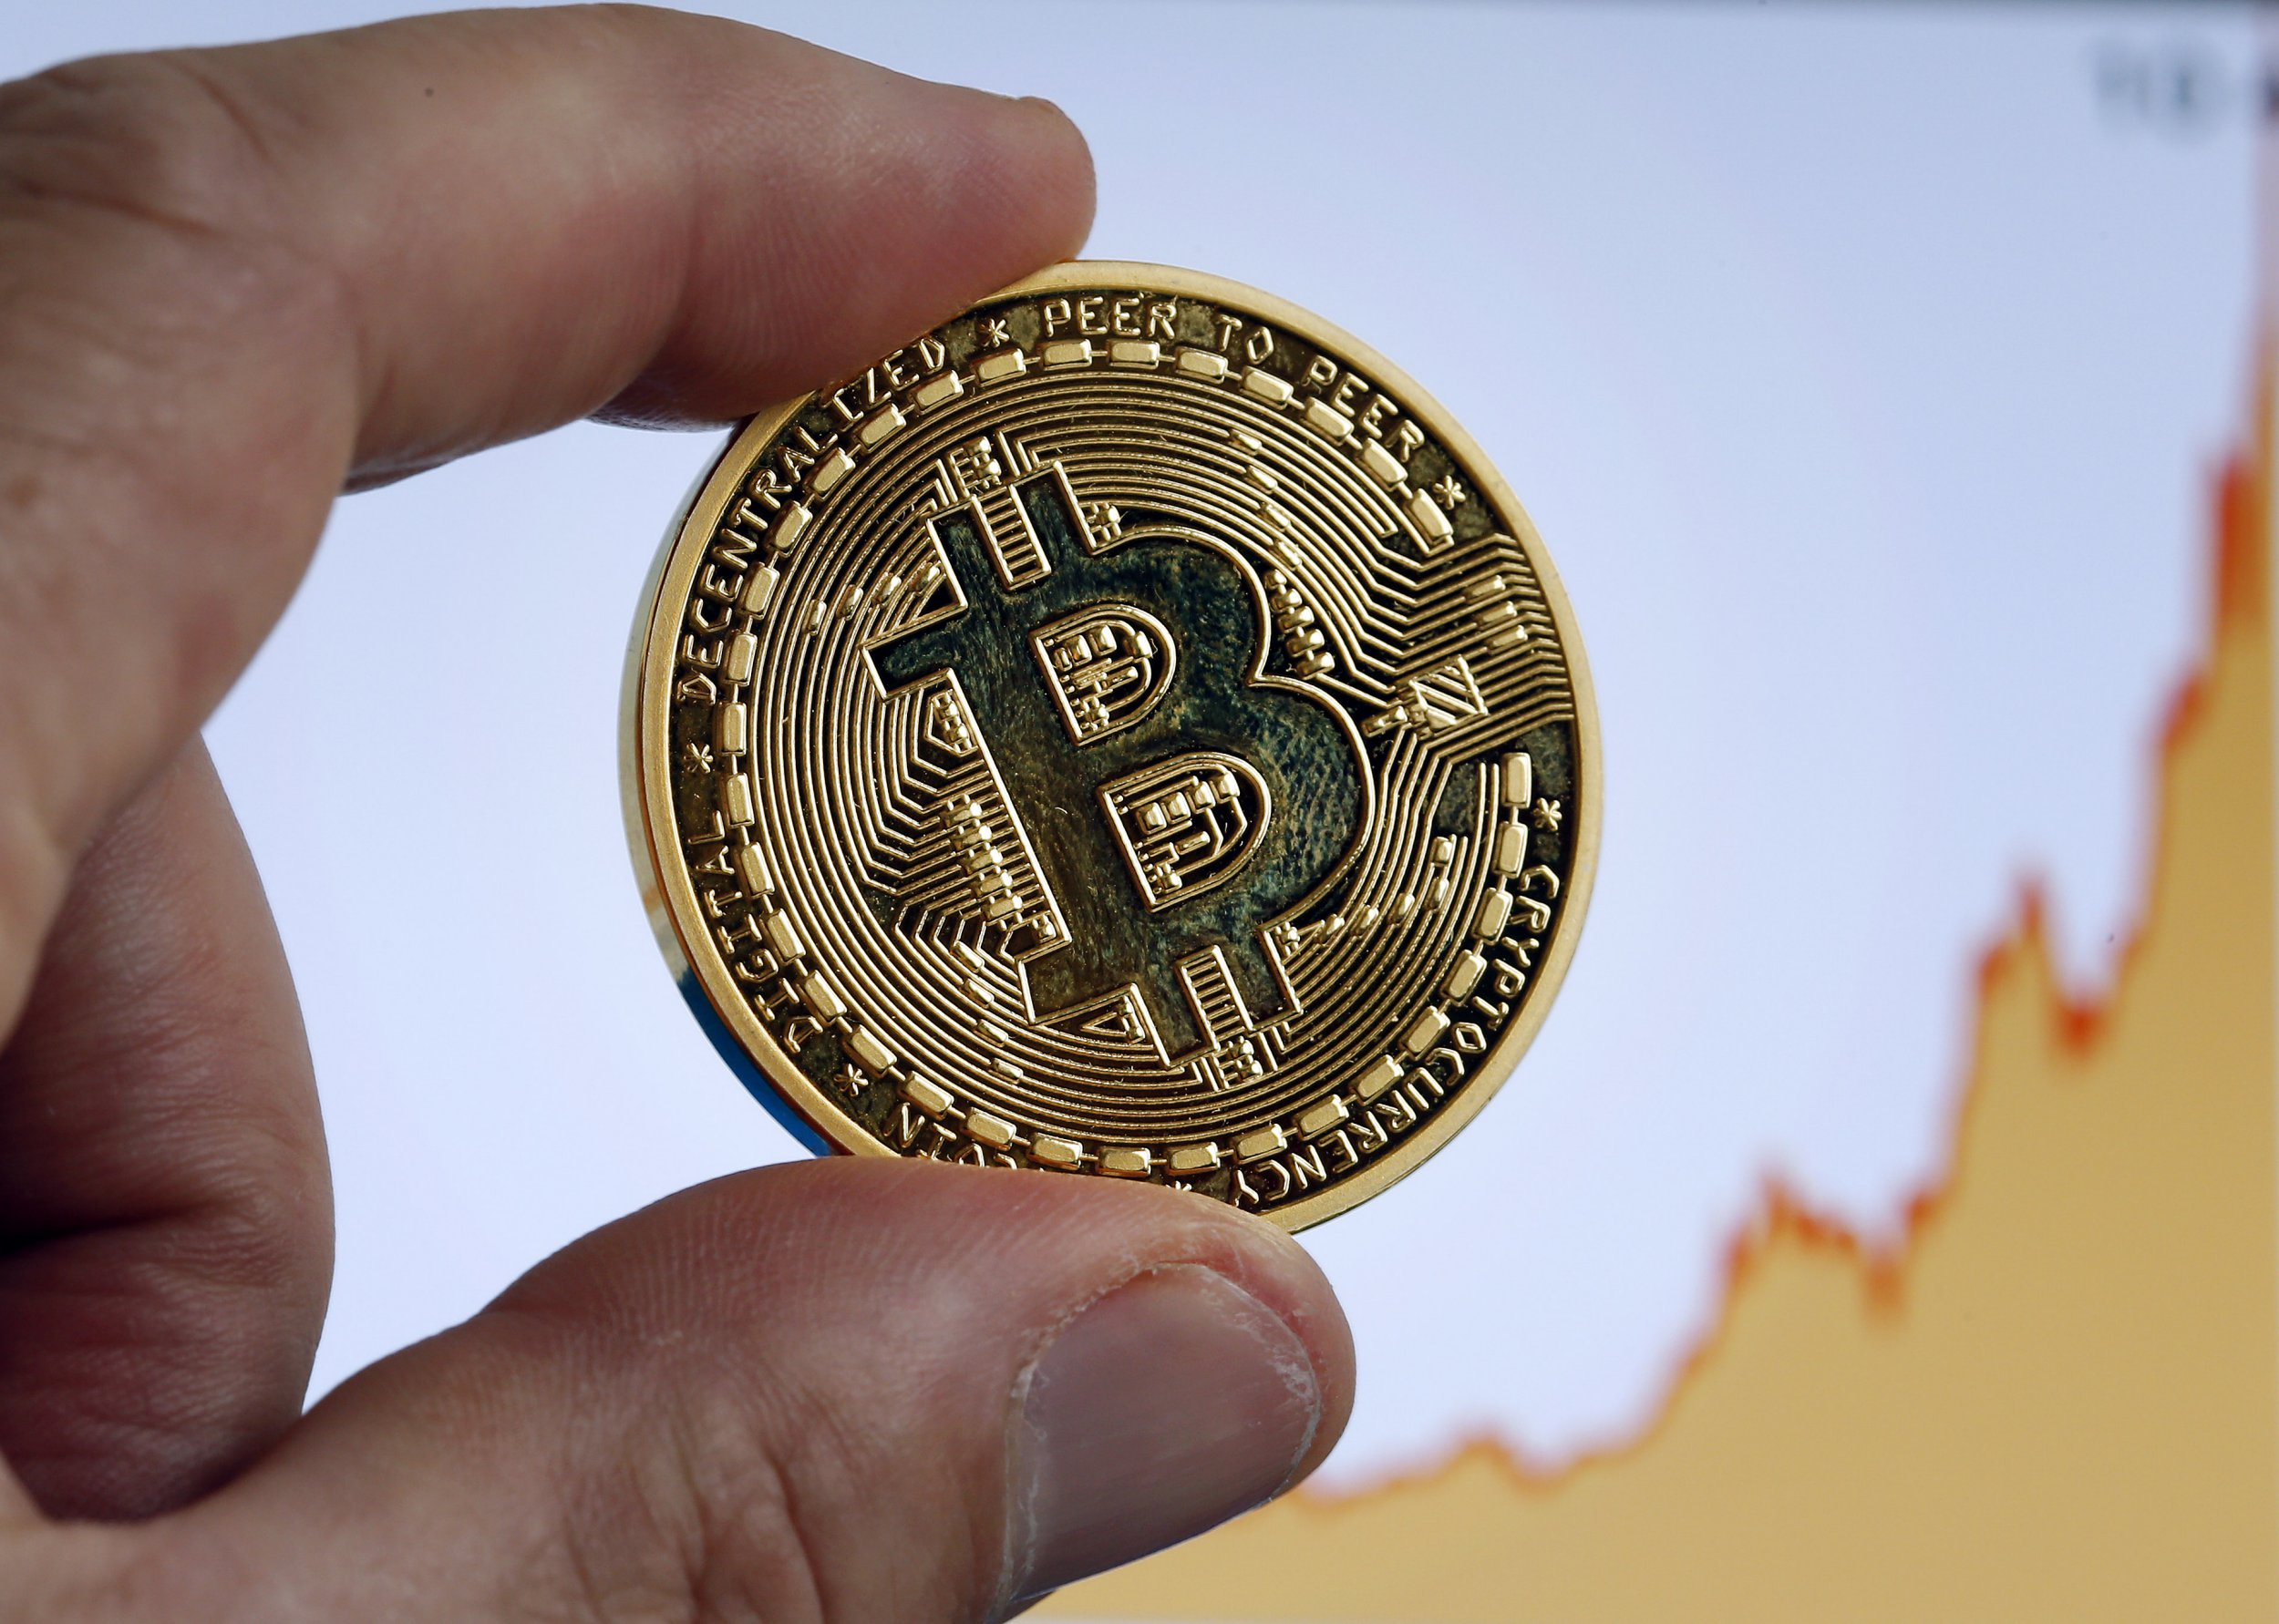 Bitcoin price nears $10,000: Litecoin, Ripple, Ethereum in cryptocurrency comeback